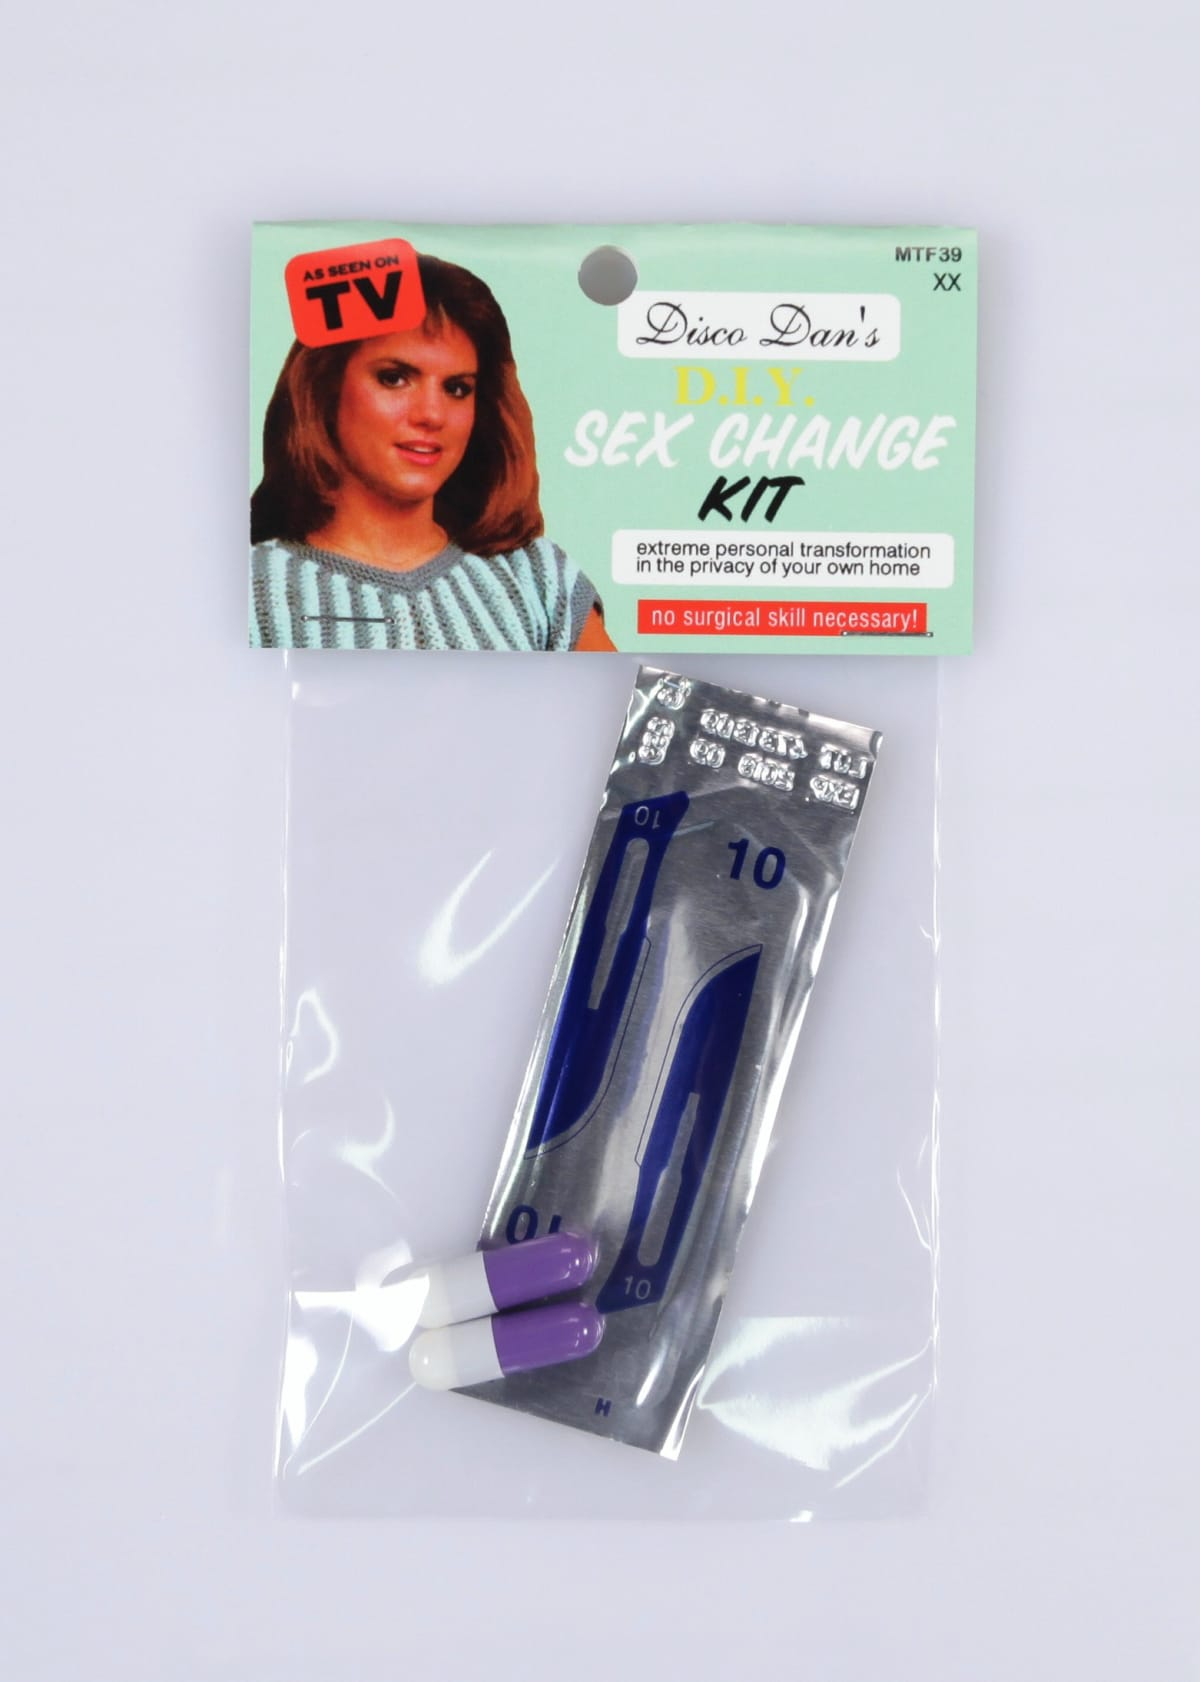 D.I.Y. Sex change kit for men